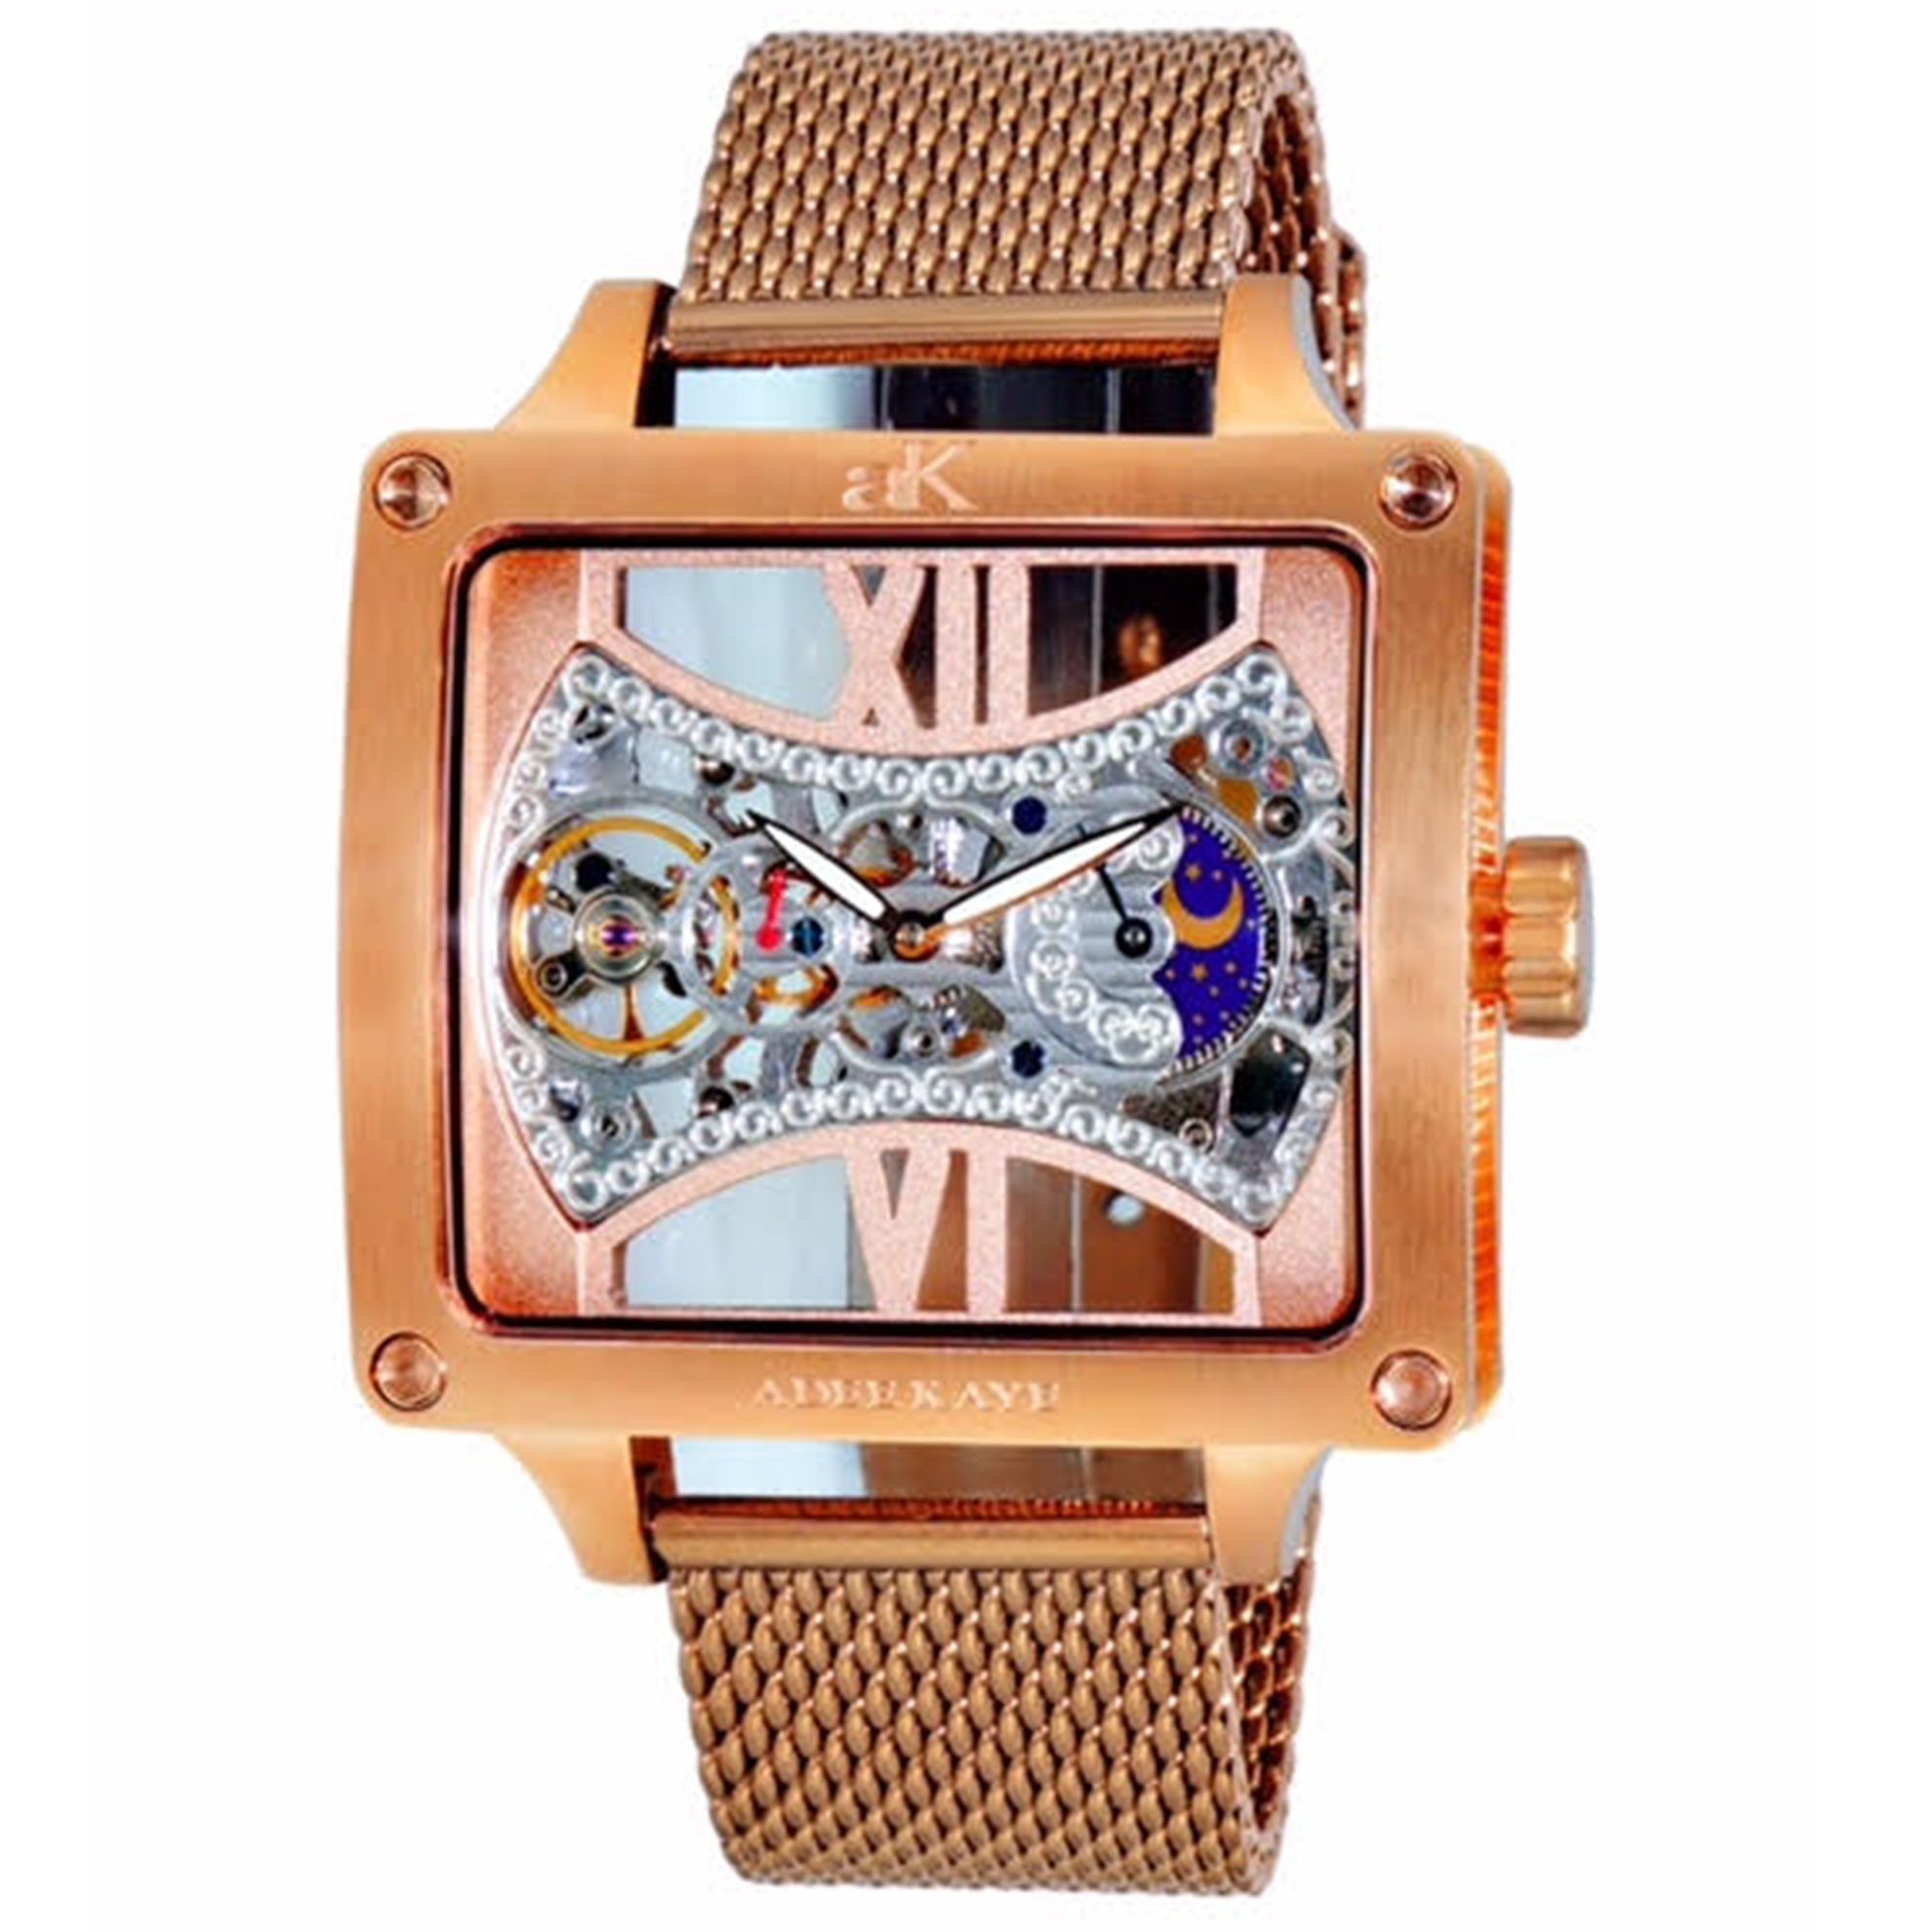 Adee Kaye AK2297-MRG_MESH Adee Kaye Skeleton 18 Jewels Automatic Moonphase Rose Gold Mesh Band